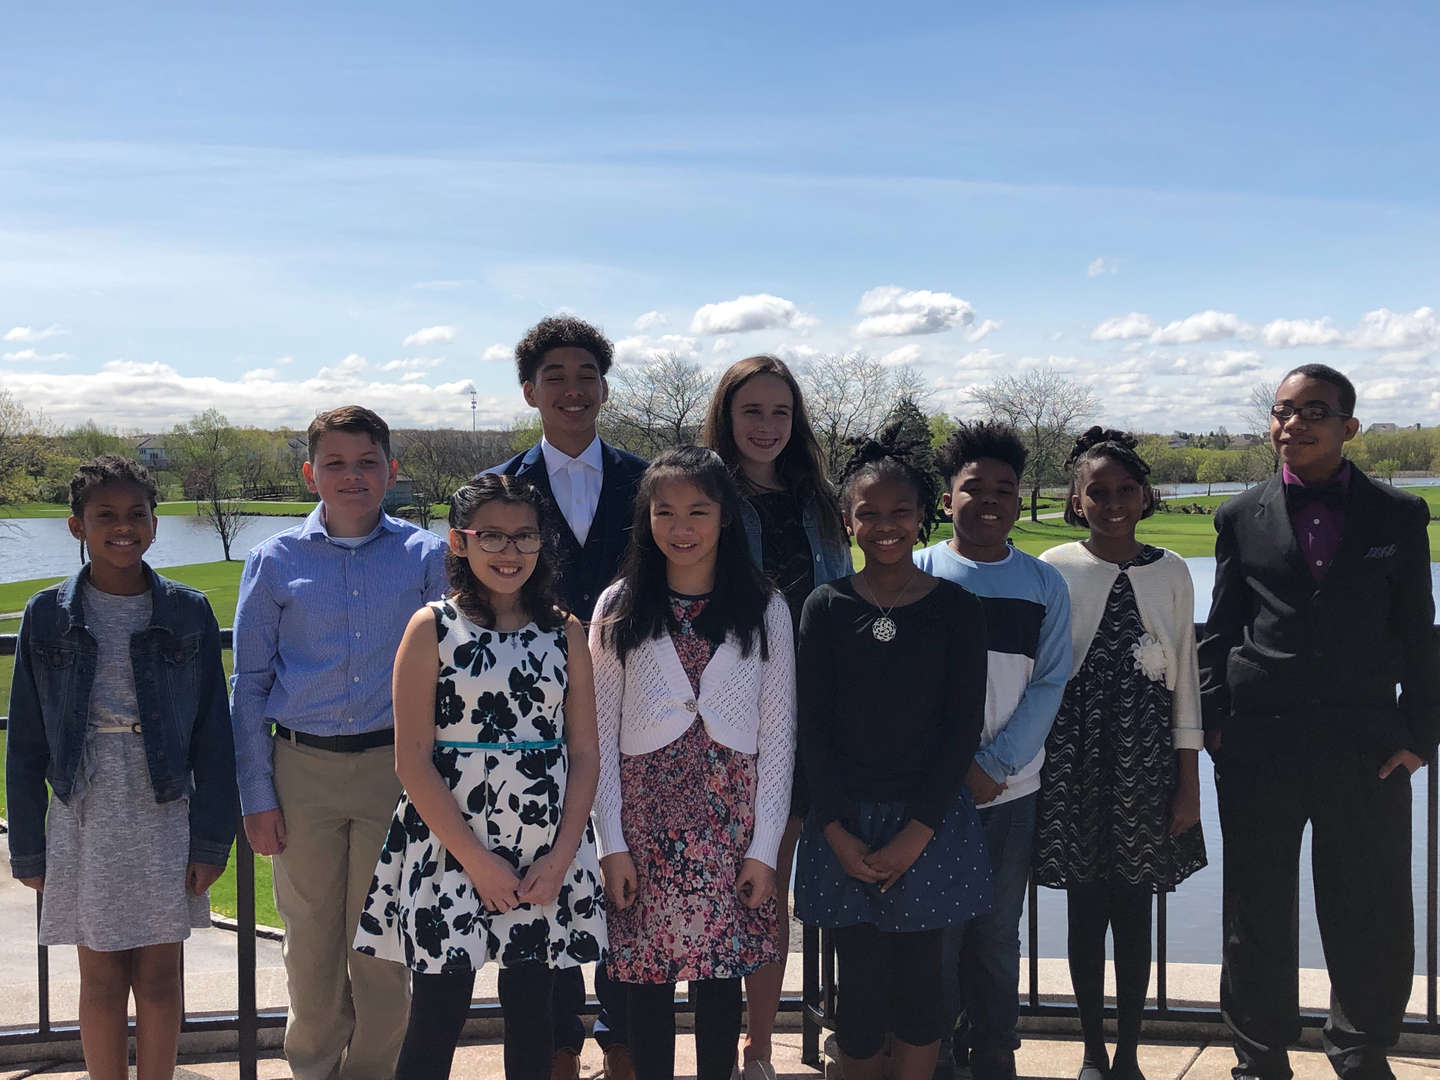 The District 161 2019 recipients of the Illinois Principal's Association Student Recognition